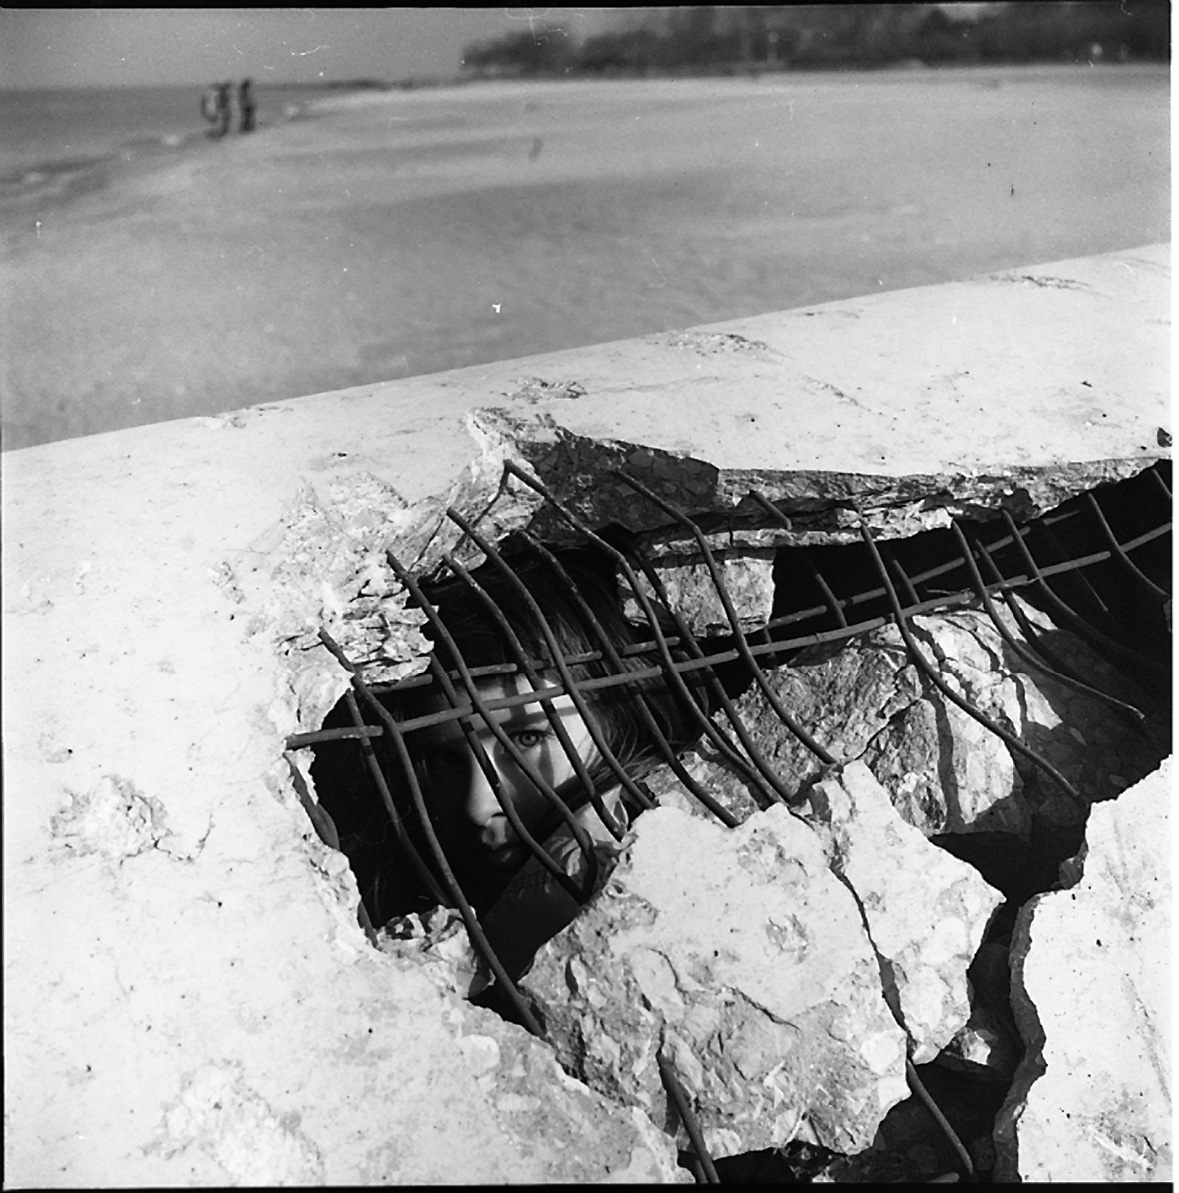 Vivian Maier, Girl Inside Culvert on Beach, Wilmette, IL, 1968